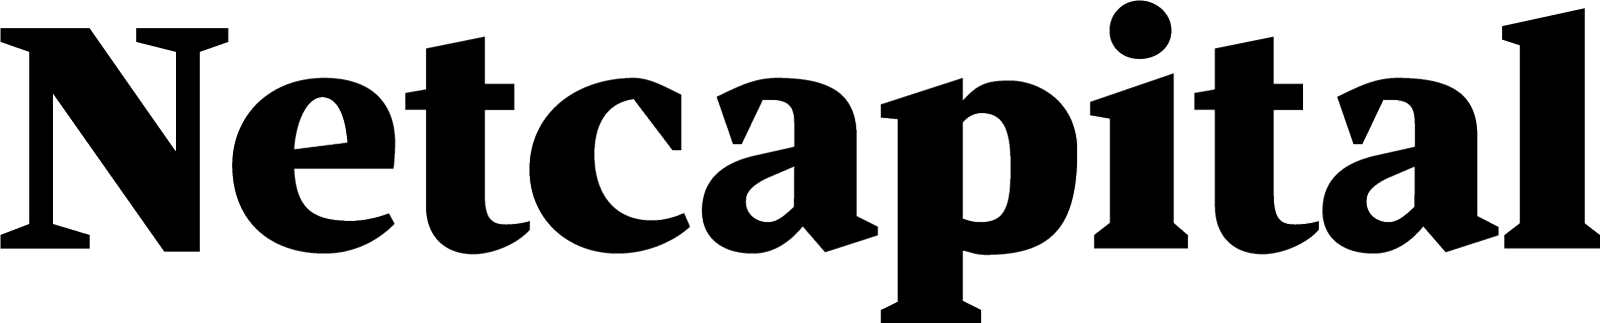 netcapital-wordmark_orig